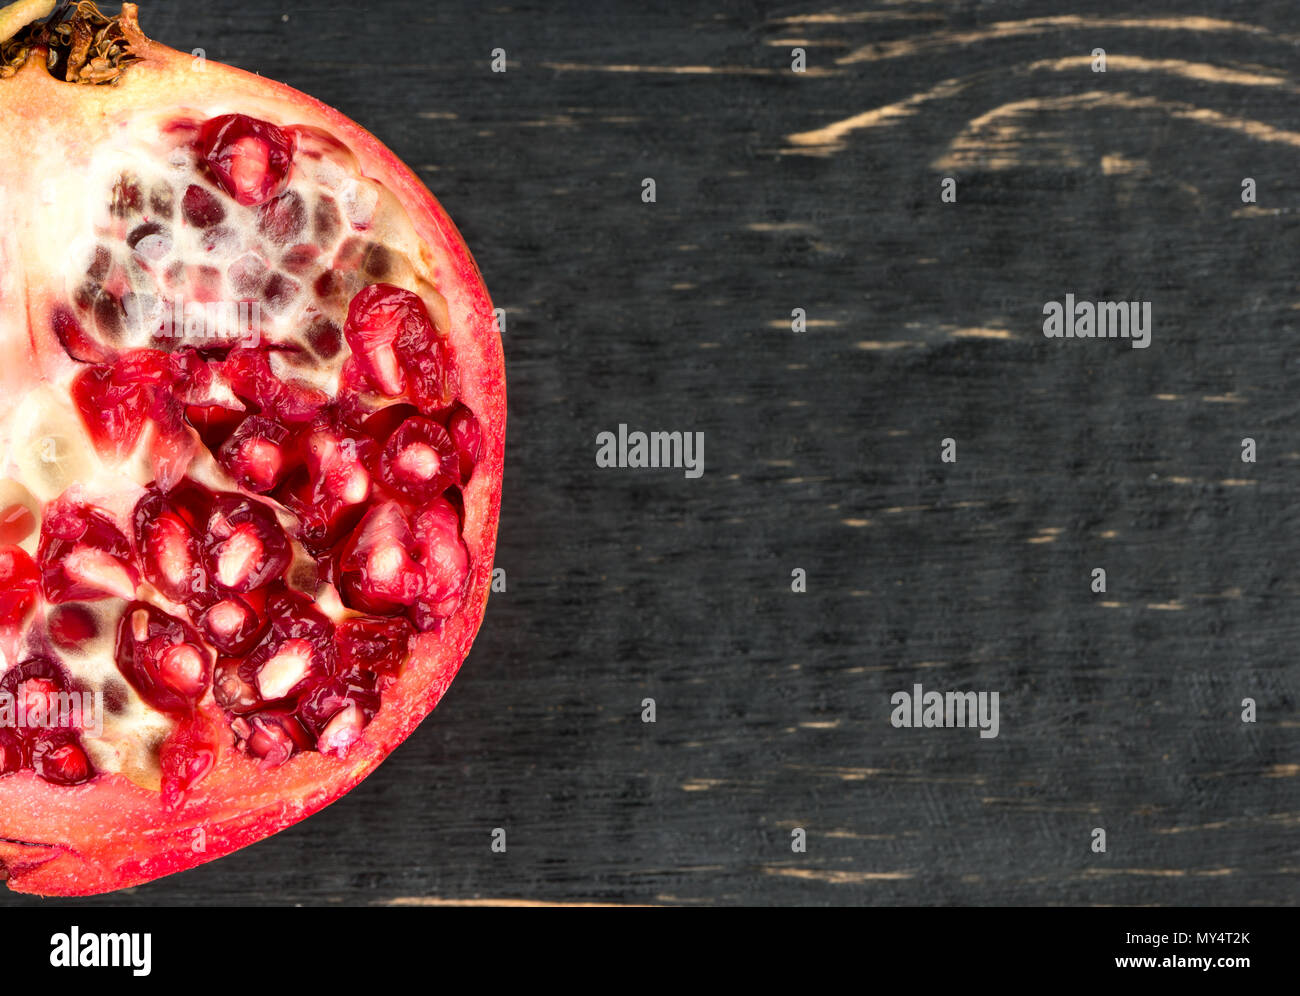 Part of half a pomegranate on a dark table closeup - Stock Image